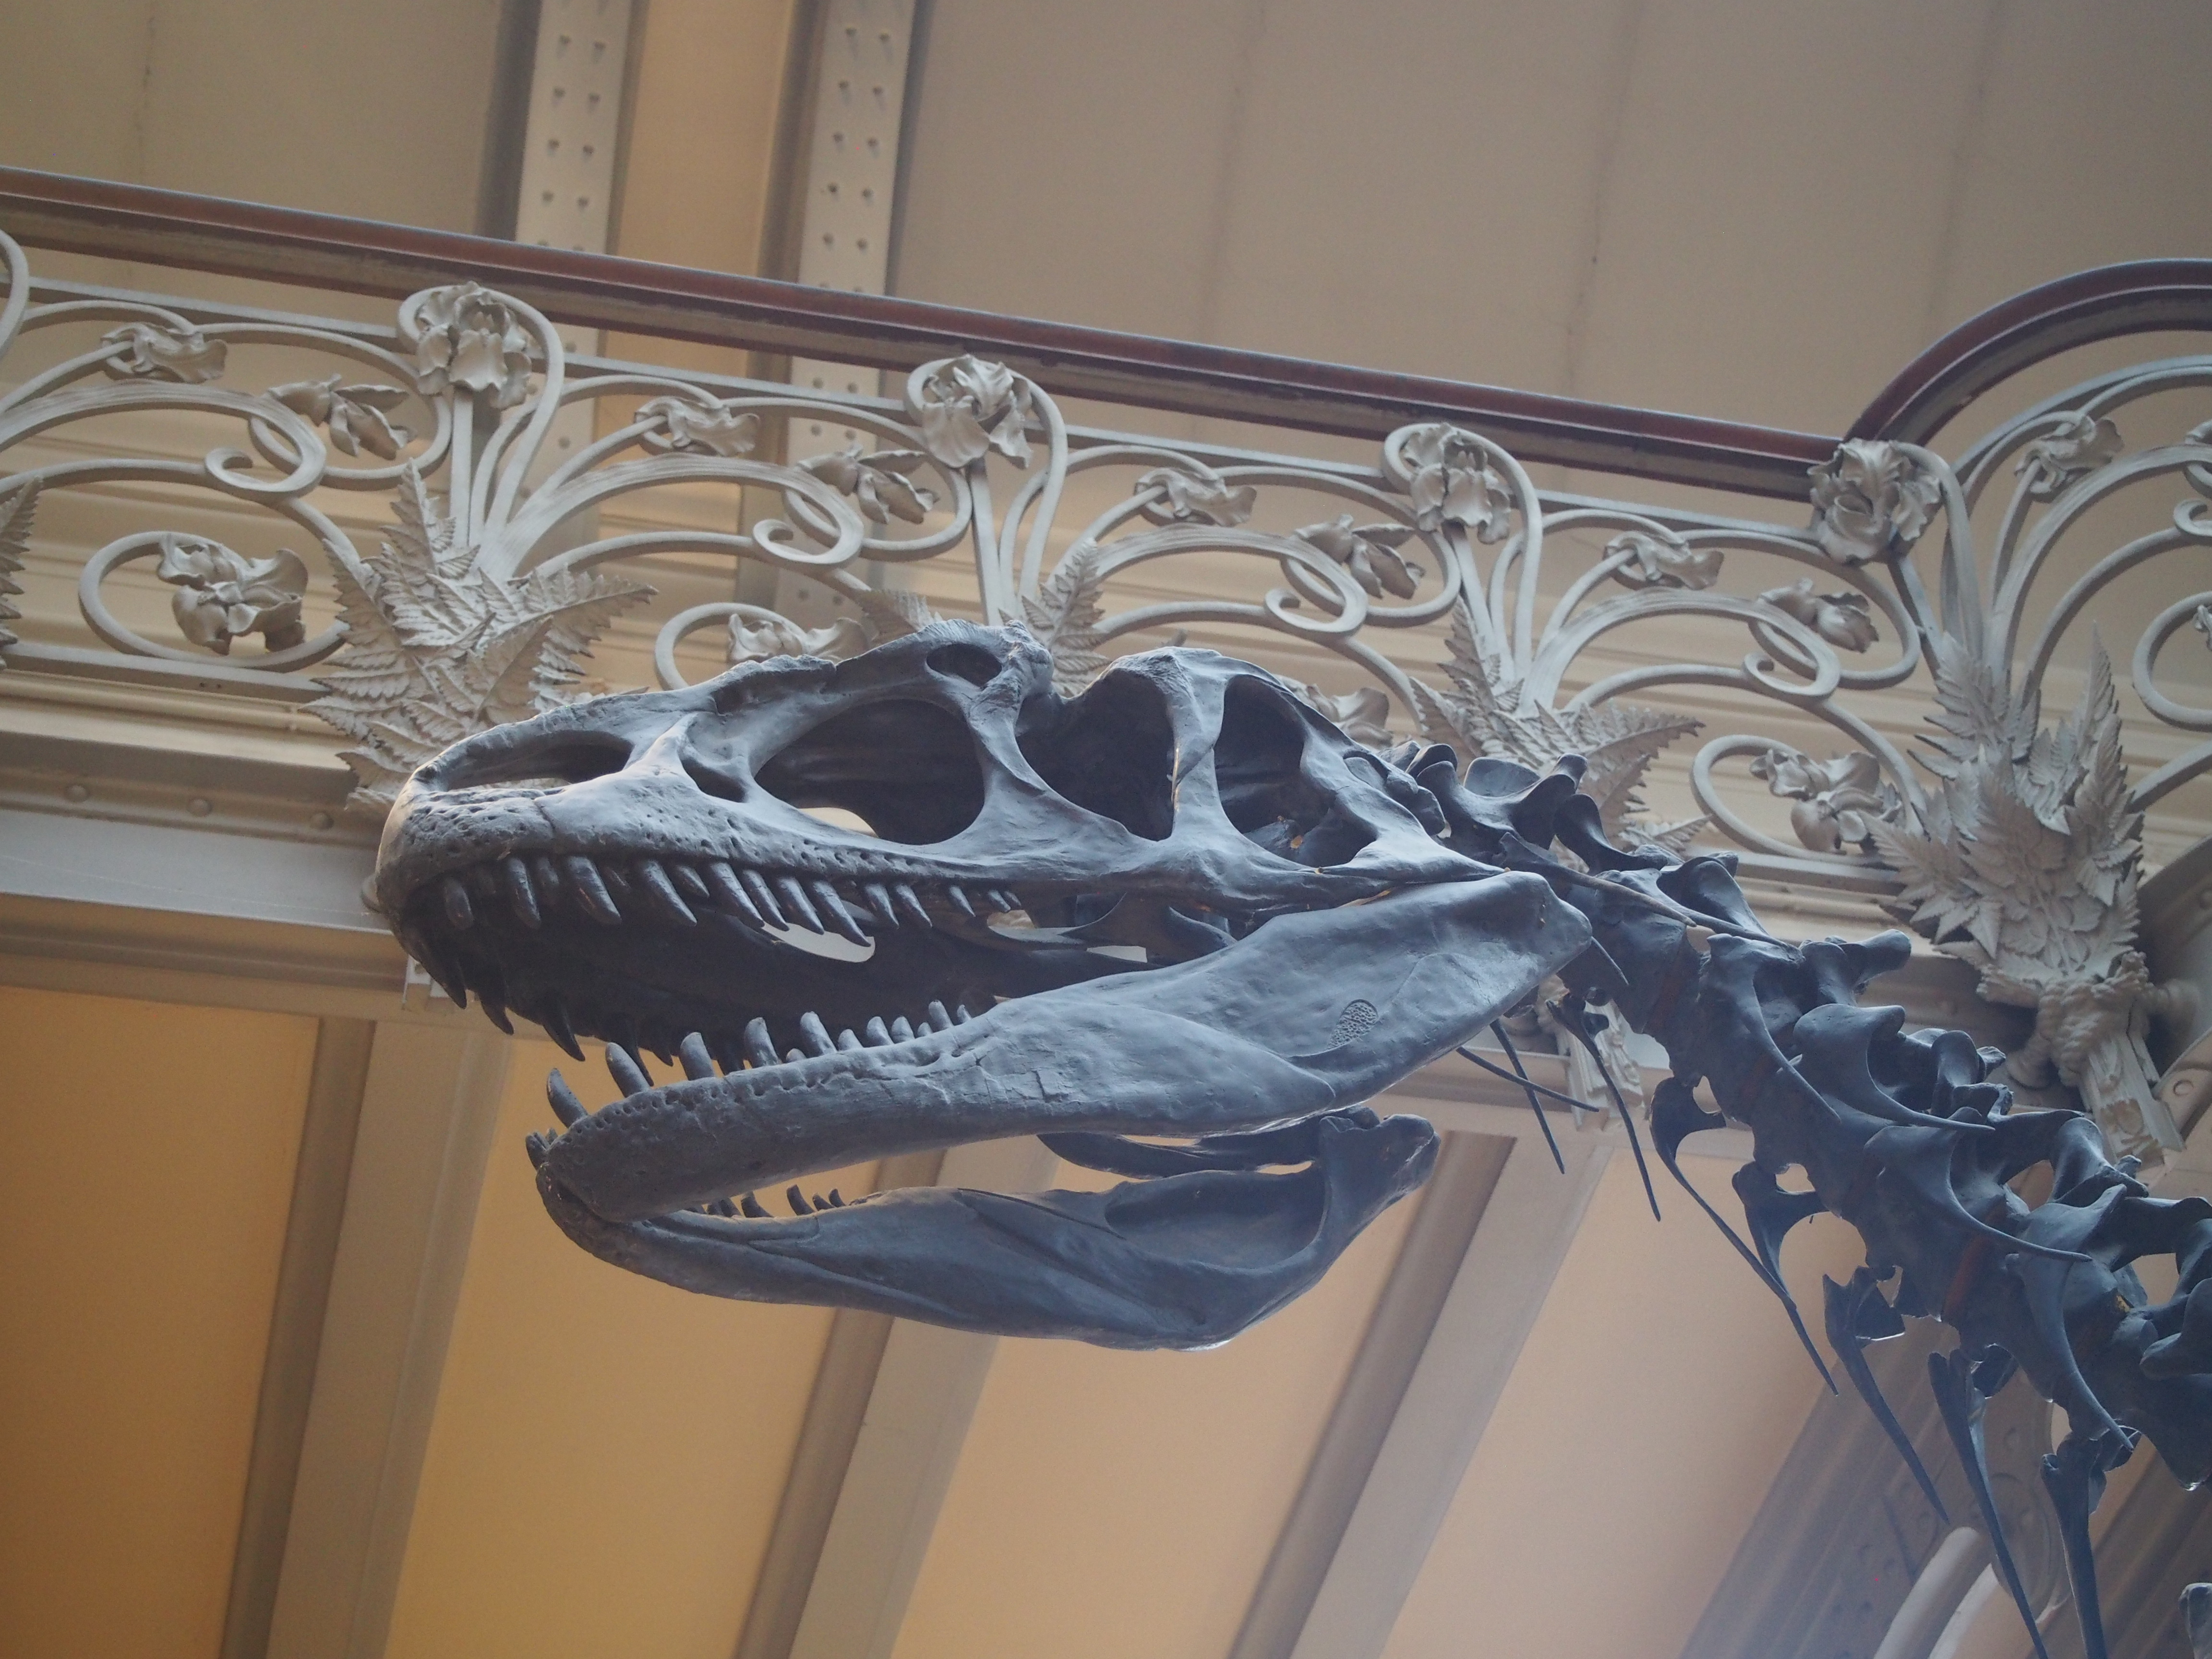 palaeontology museum Paris